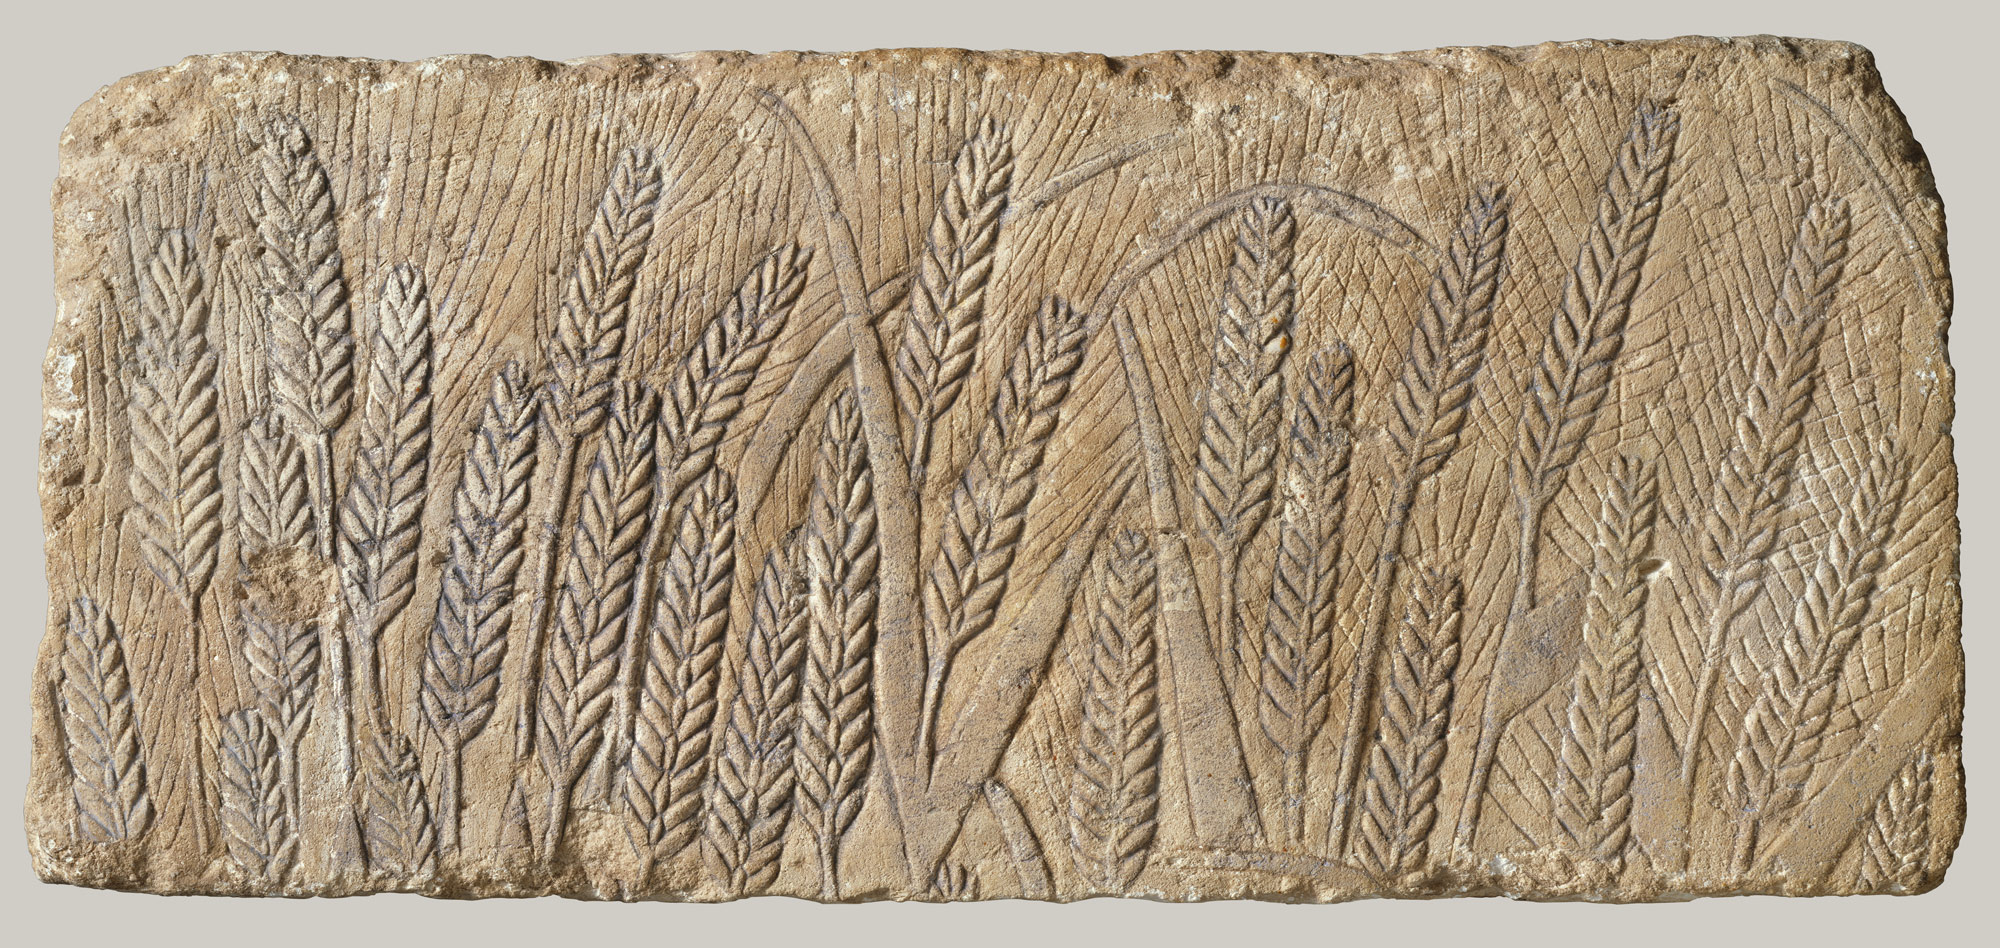 in the new kingdom ca b c essay heilbrunn ripe barley